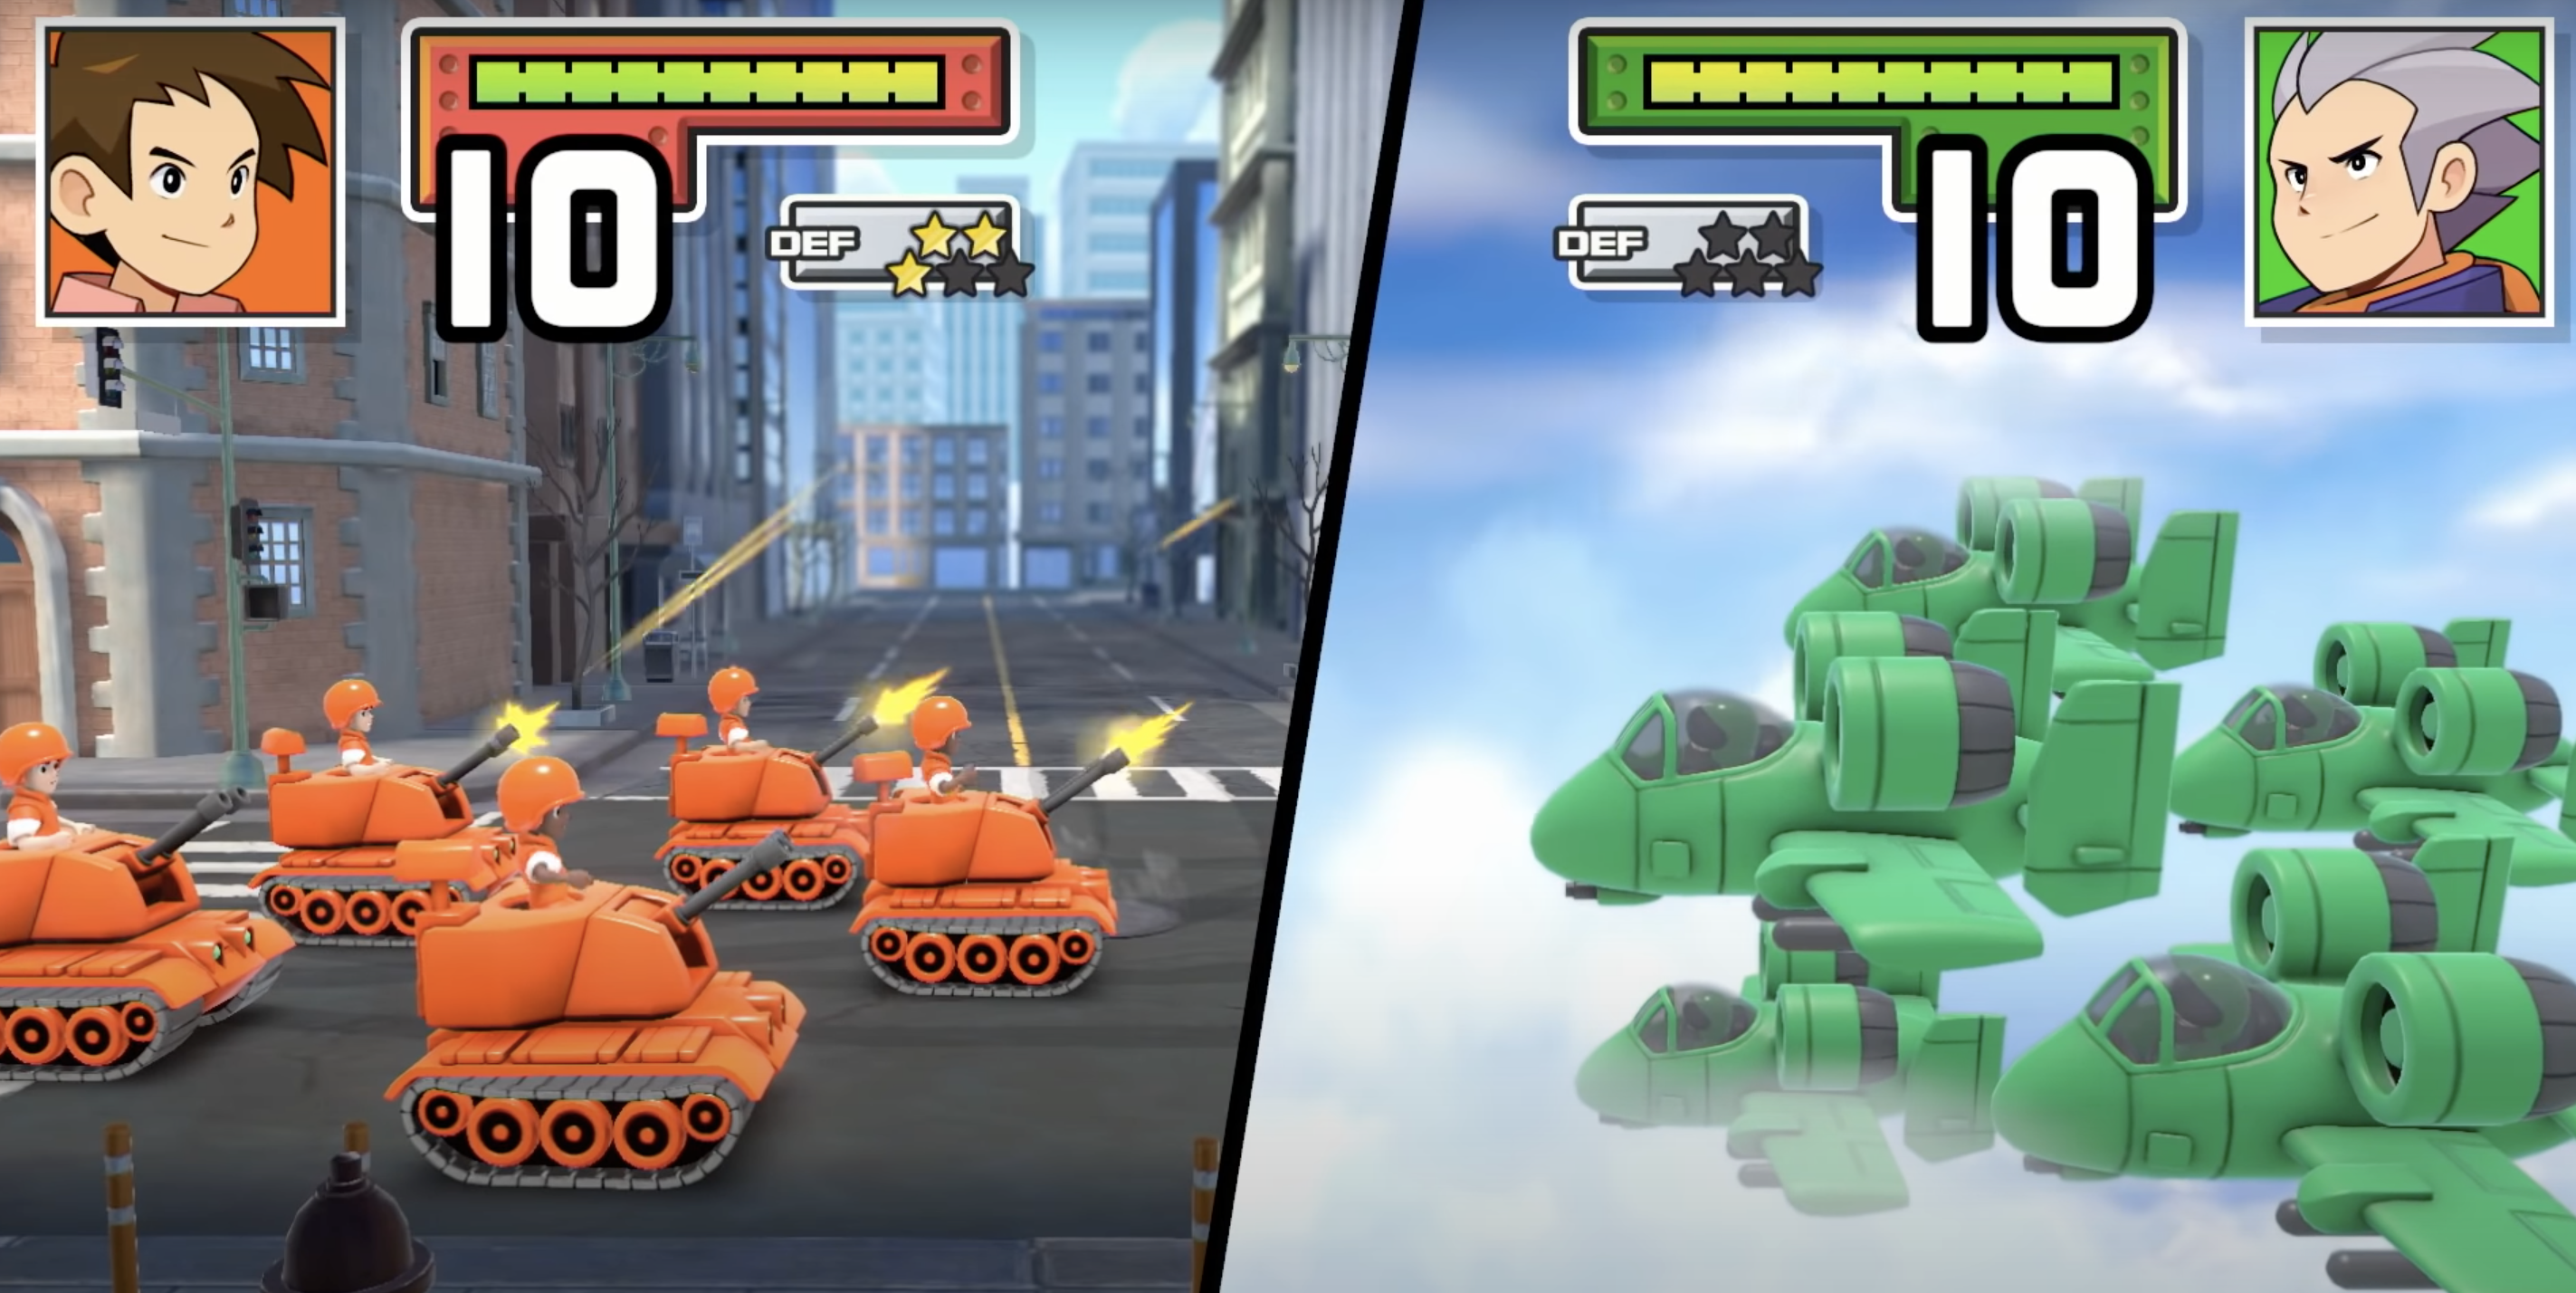 a screenshot of gameplay from advance wars